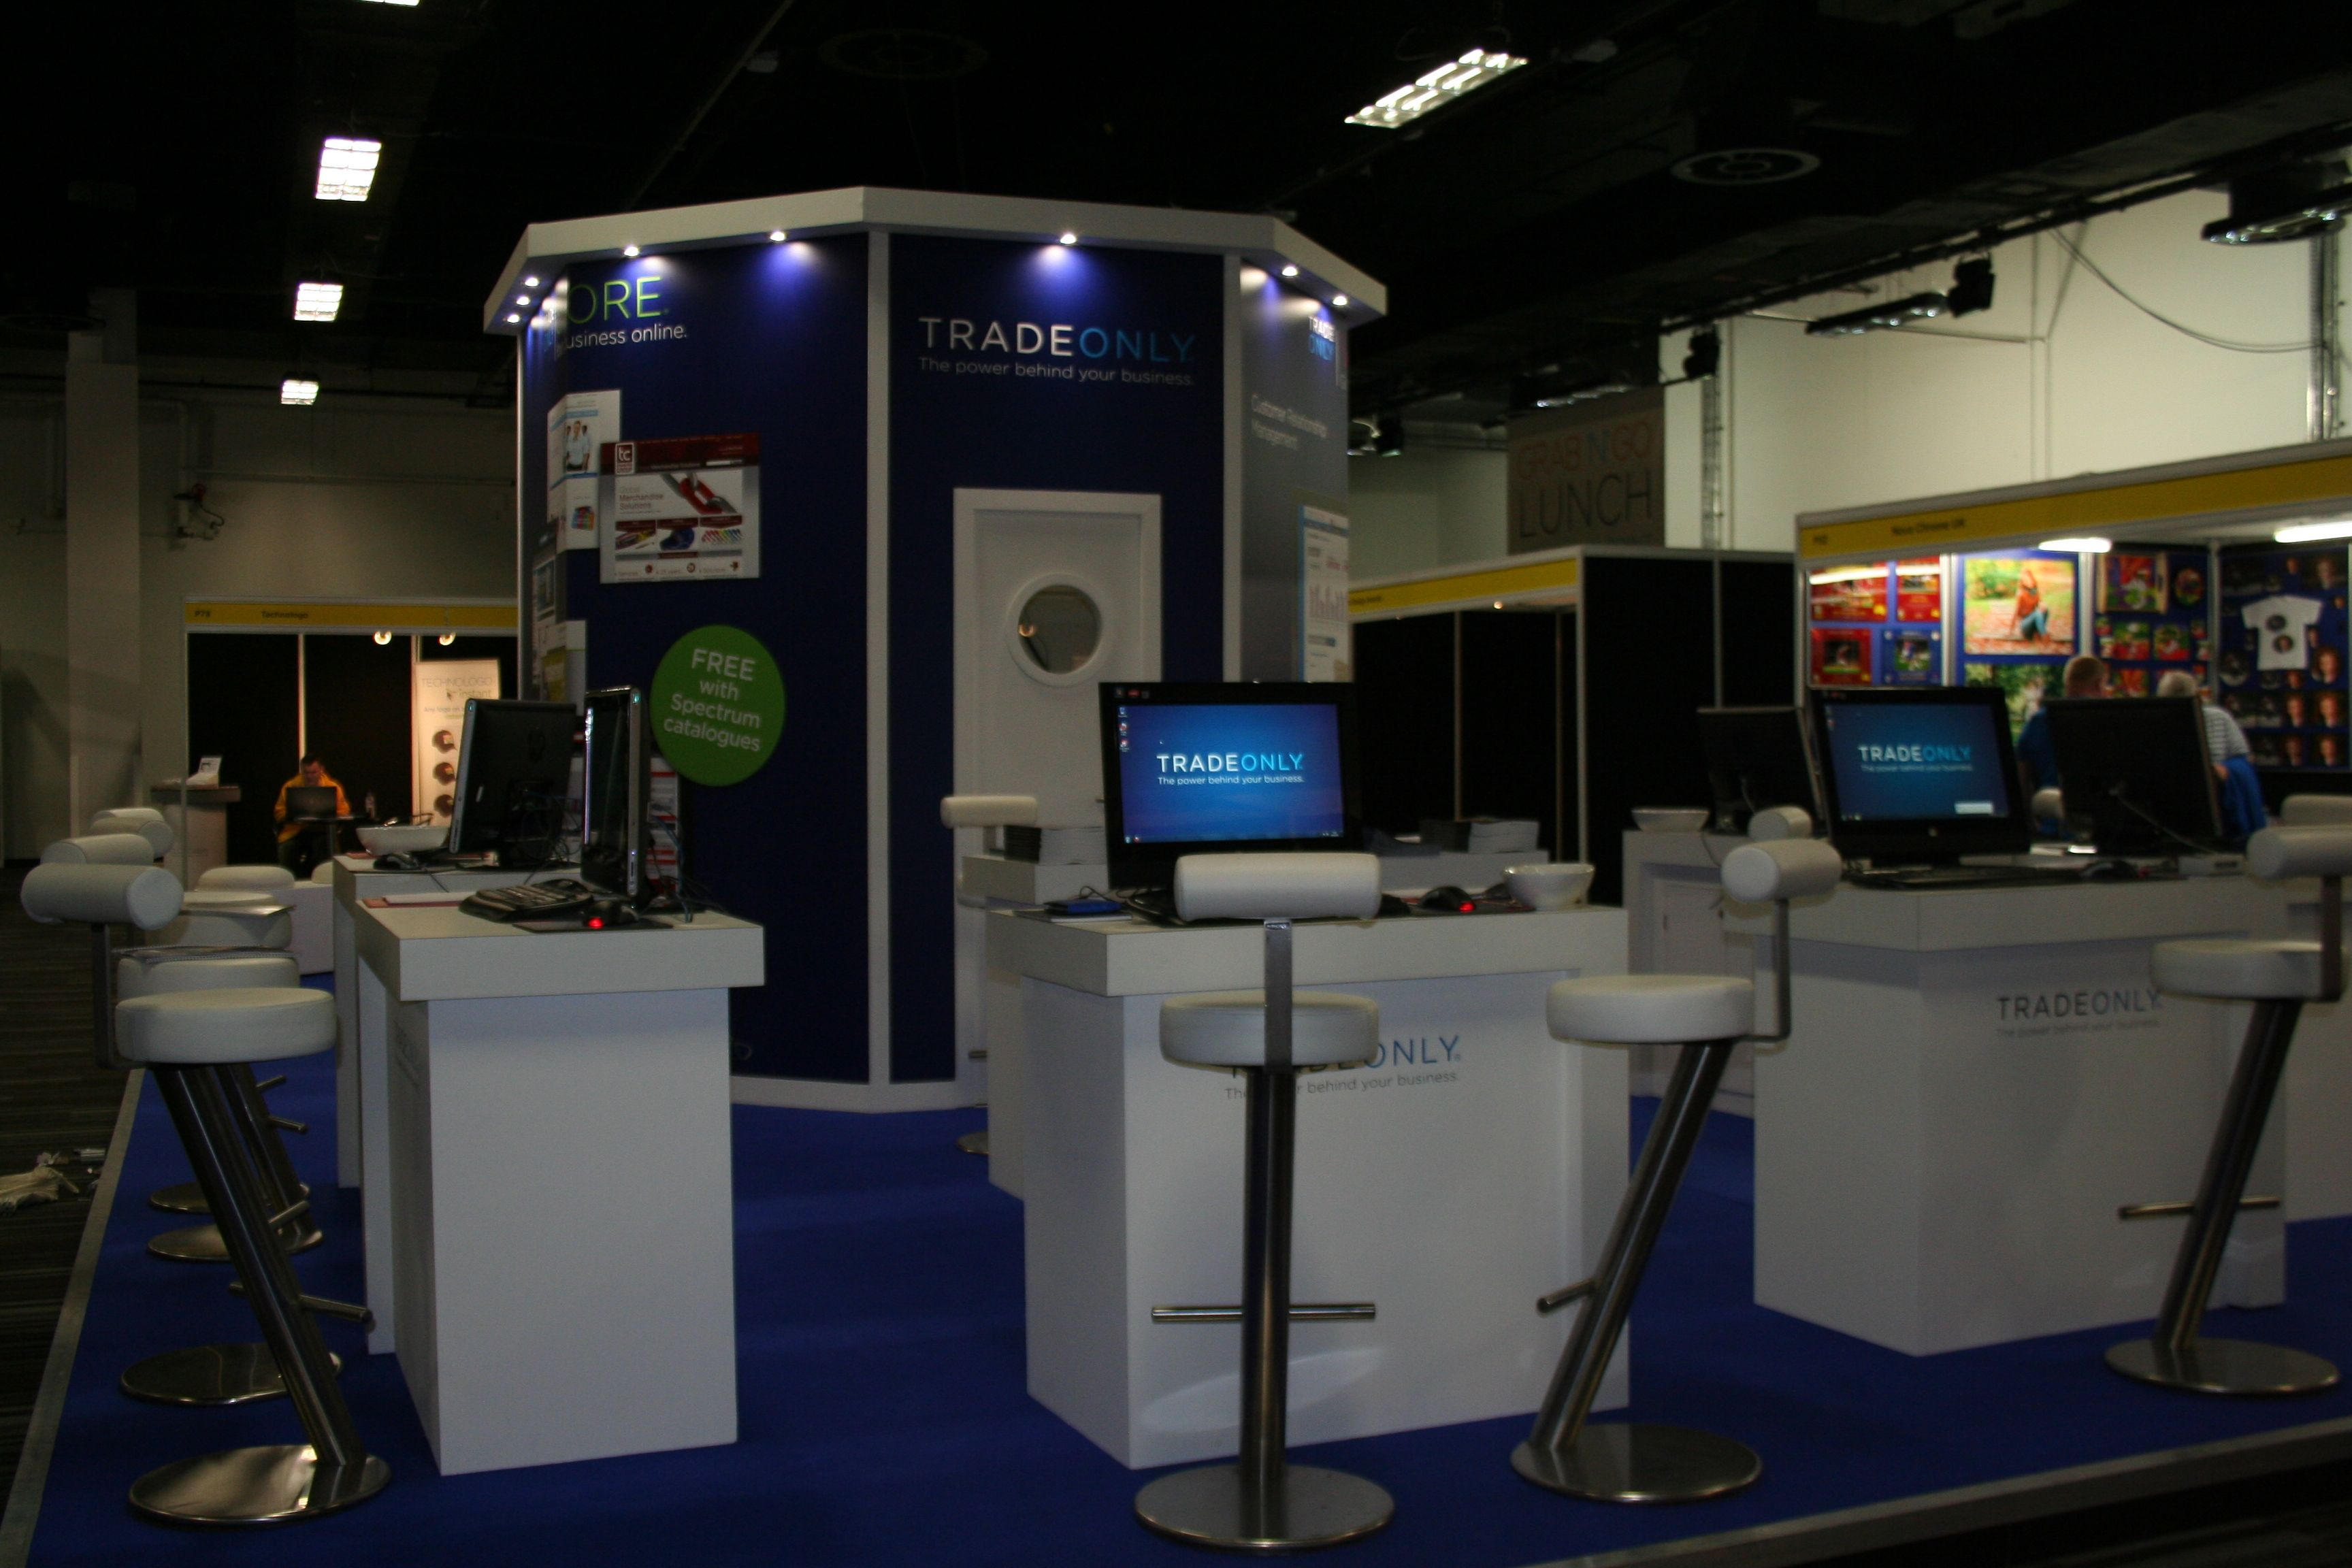 Exhibition Stand Organisers : Exhibition stand: stand designed built and installed for trade only